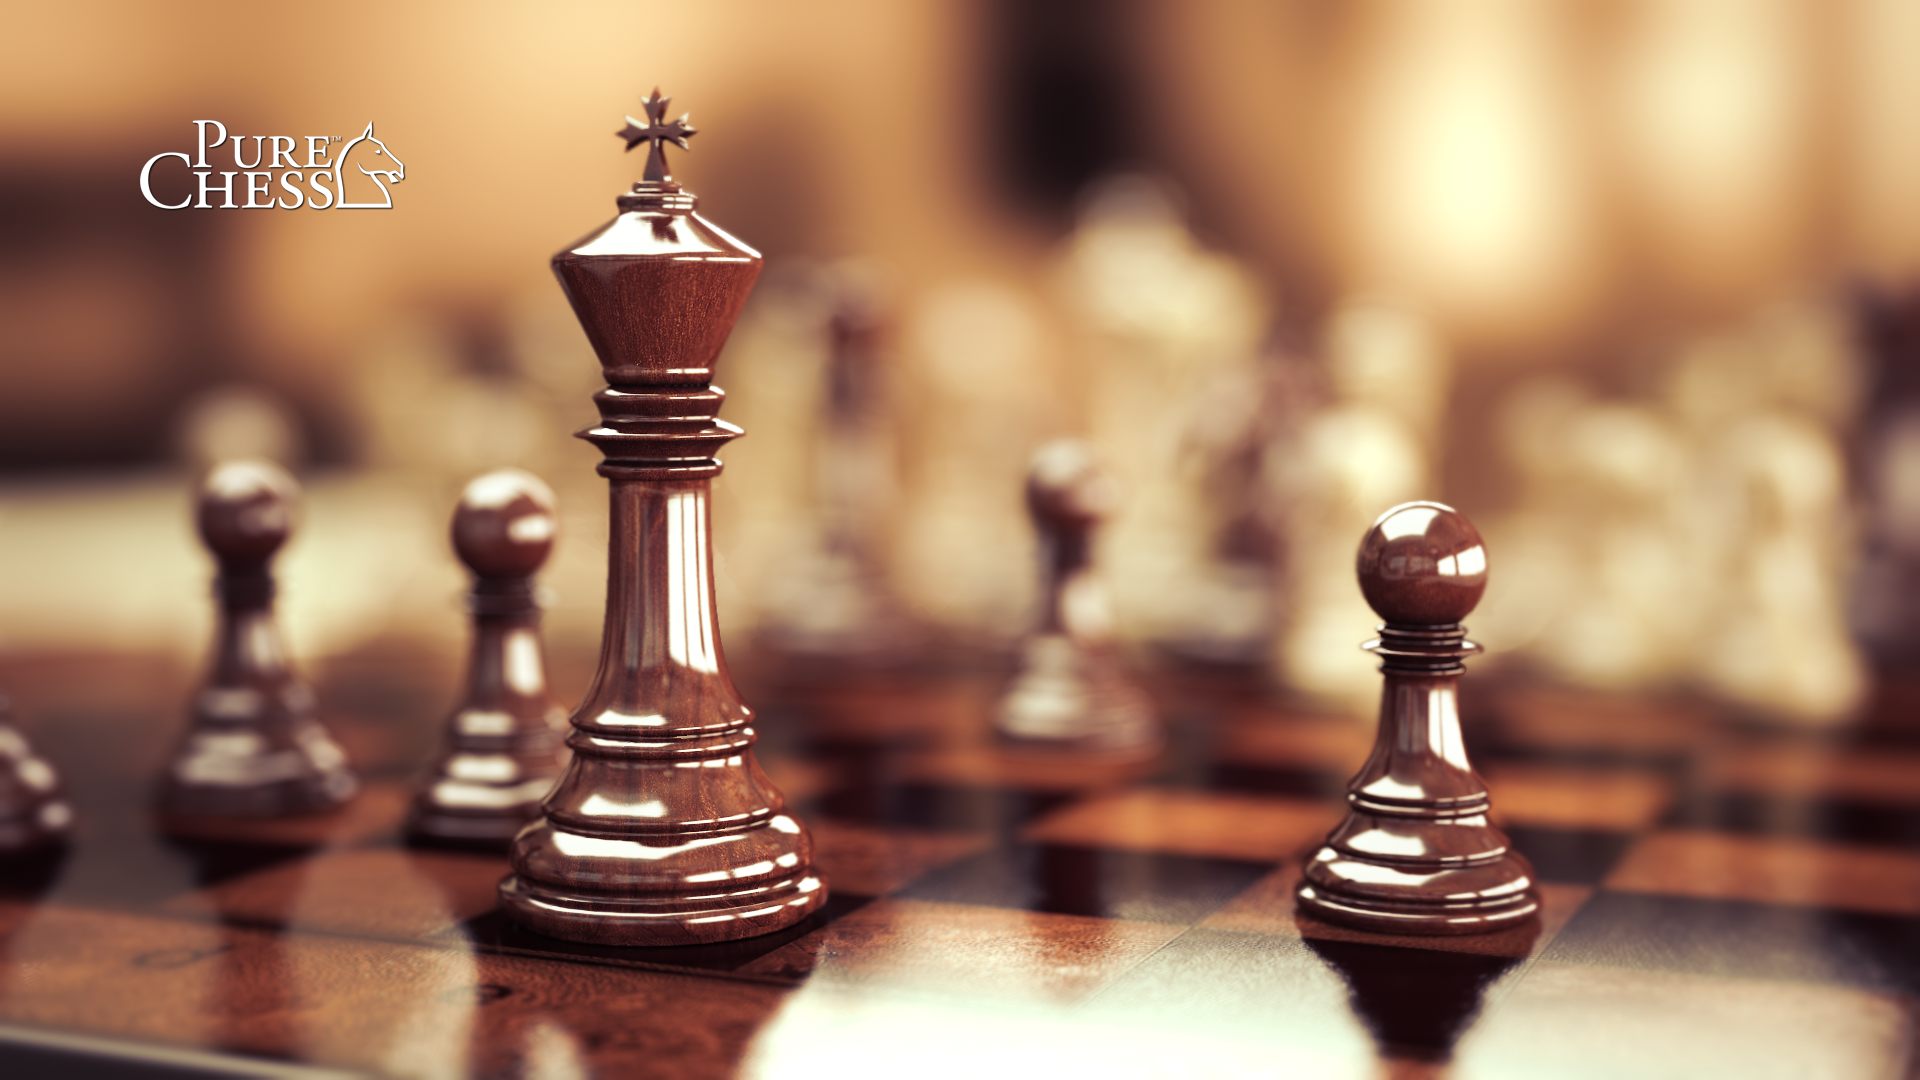 Chess Computer Wallpapers Desktop Backgrounds 1920x1080 ID460230